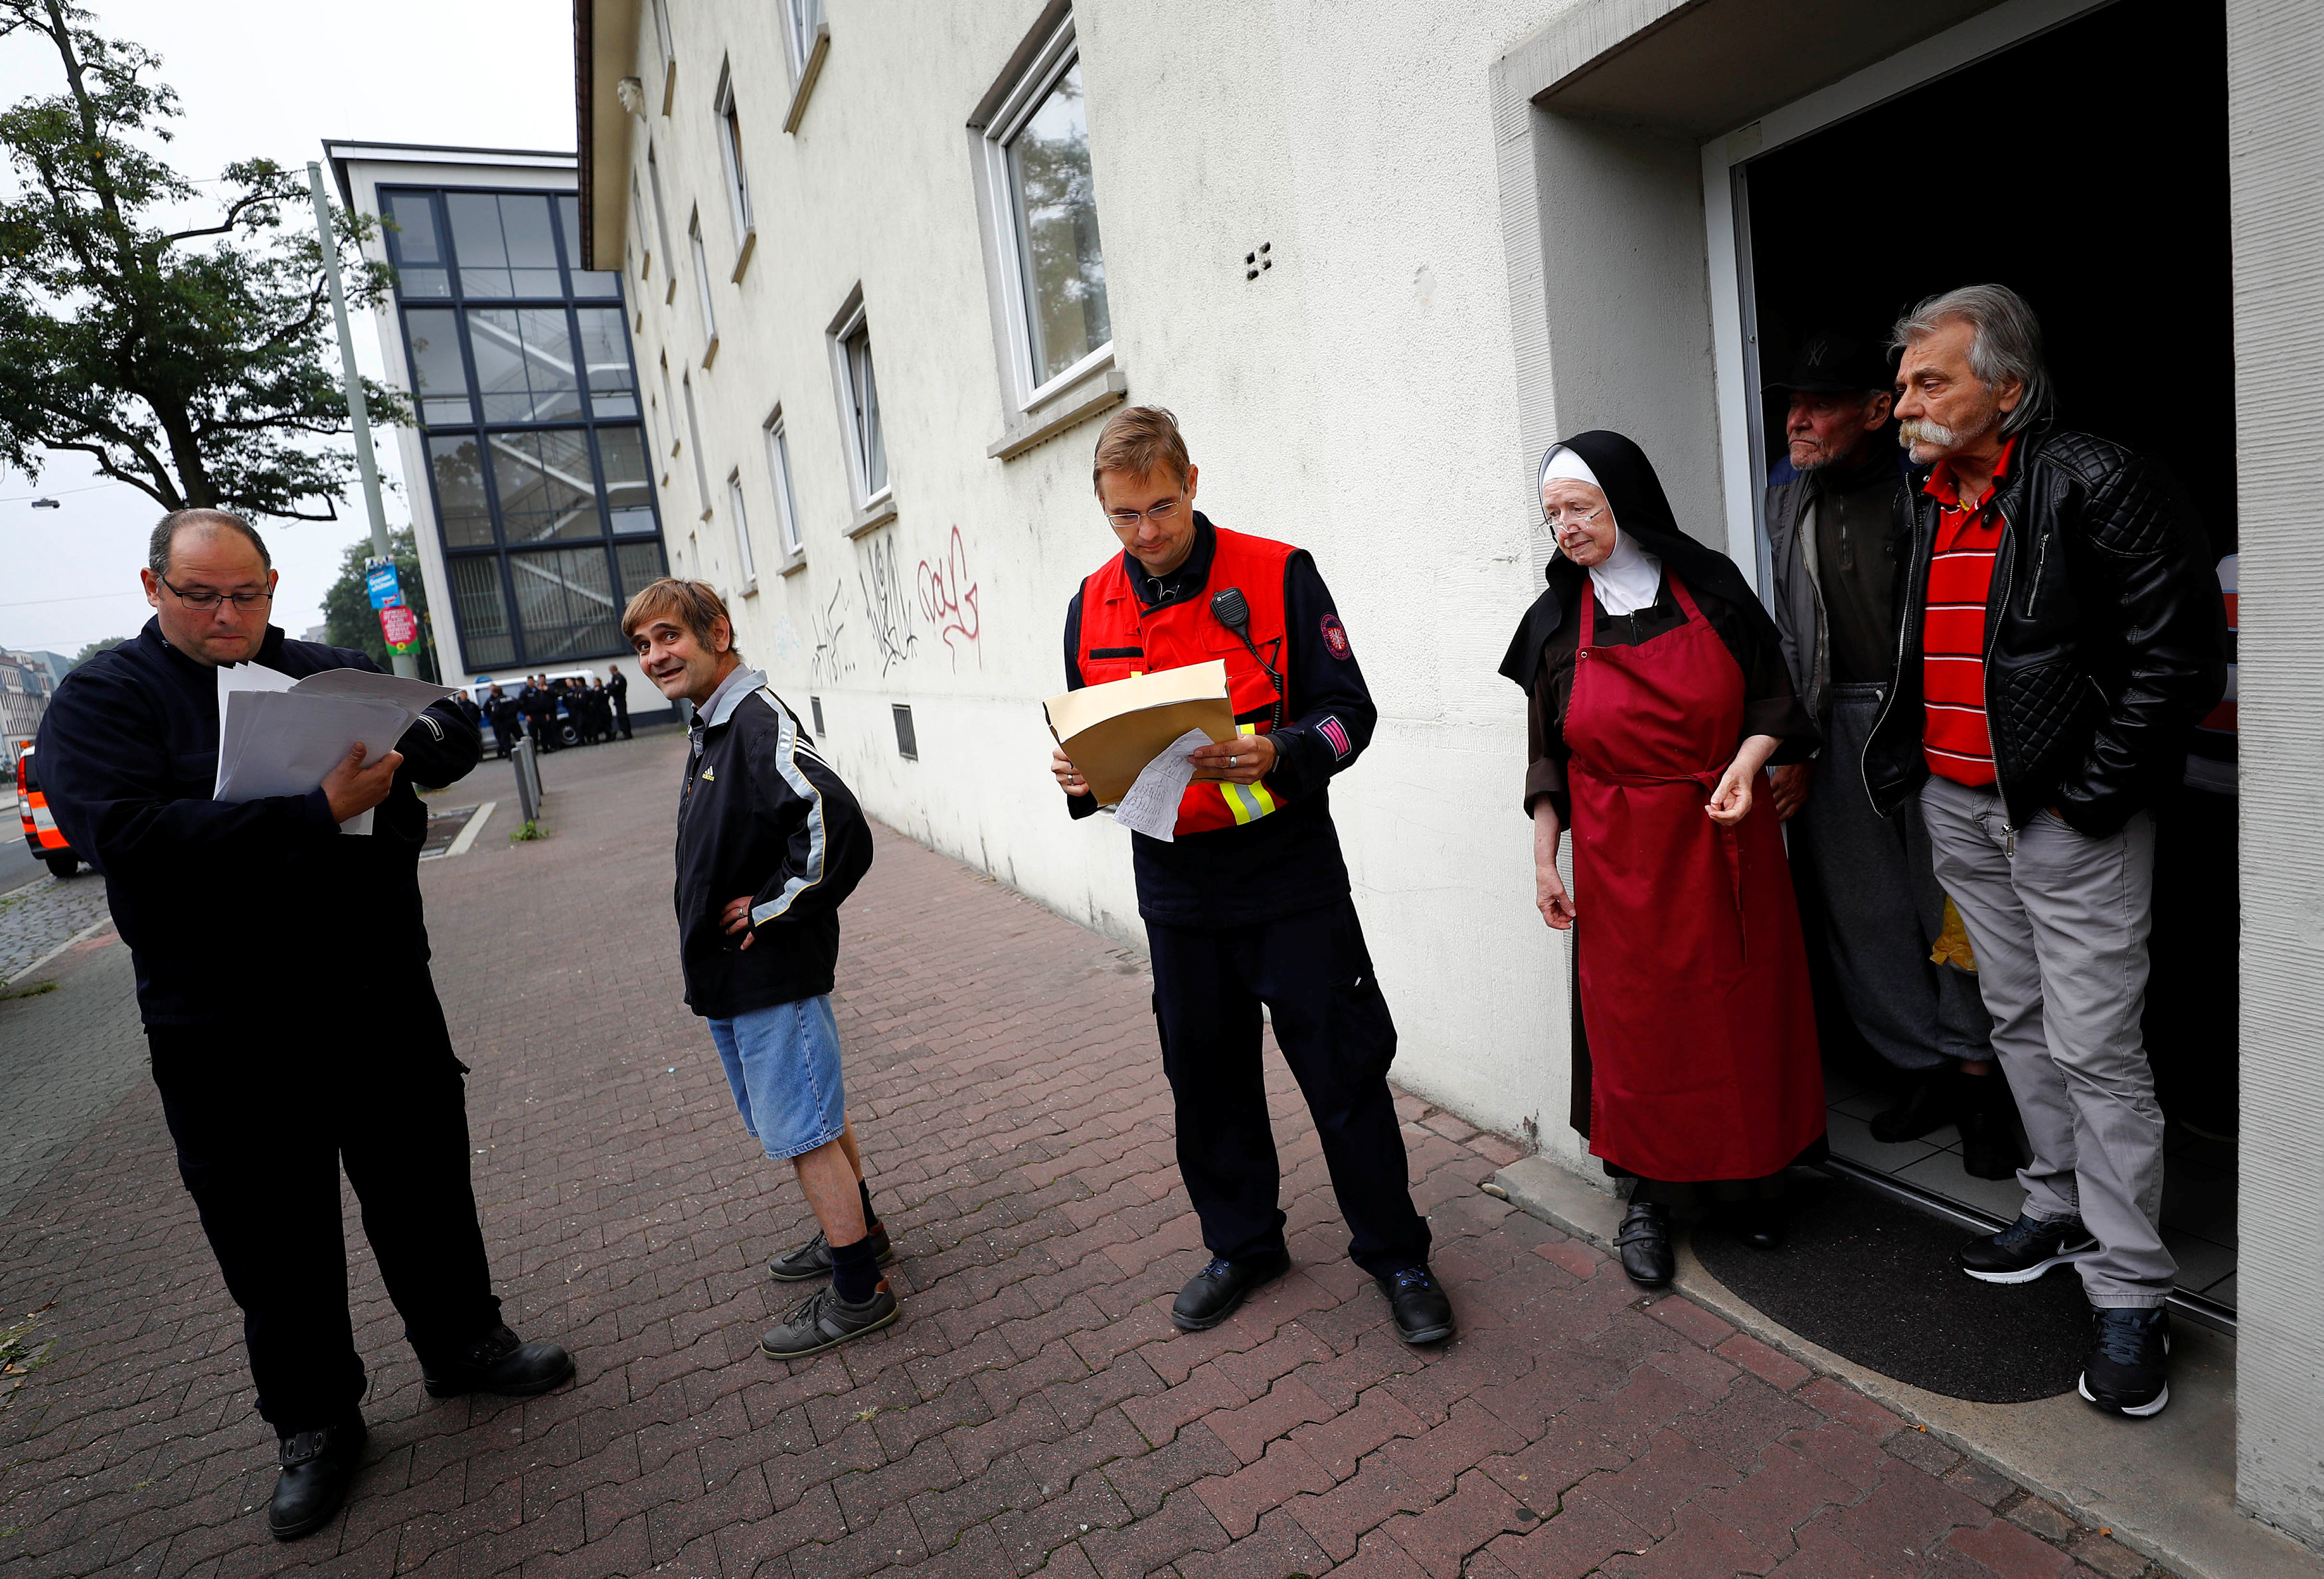 Sister Sigrid (3rdR) talks to firefighters and police officers as she observes the evacuation of her nursery home for homeless people as 60,000 people in Germany's financial capital are about to evacuate the city while experts defuse an unexploded British World War Two bomb found during renovations on the university's campus in Frankfurt, Germany, on Sept. 3, 2017.  (REUTERS/Kai Pfaffenbach)